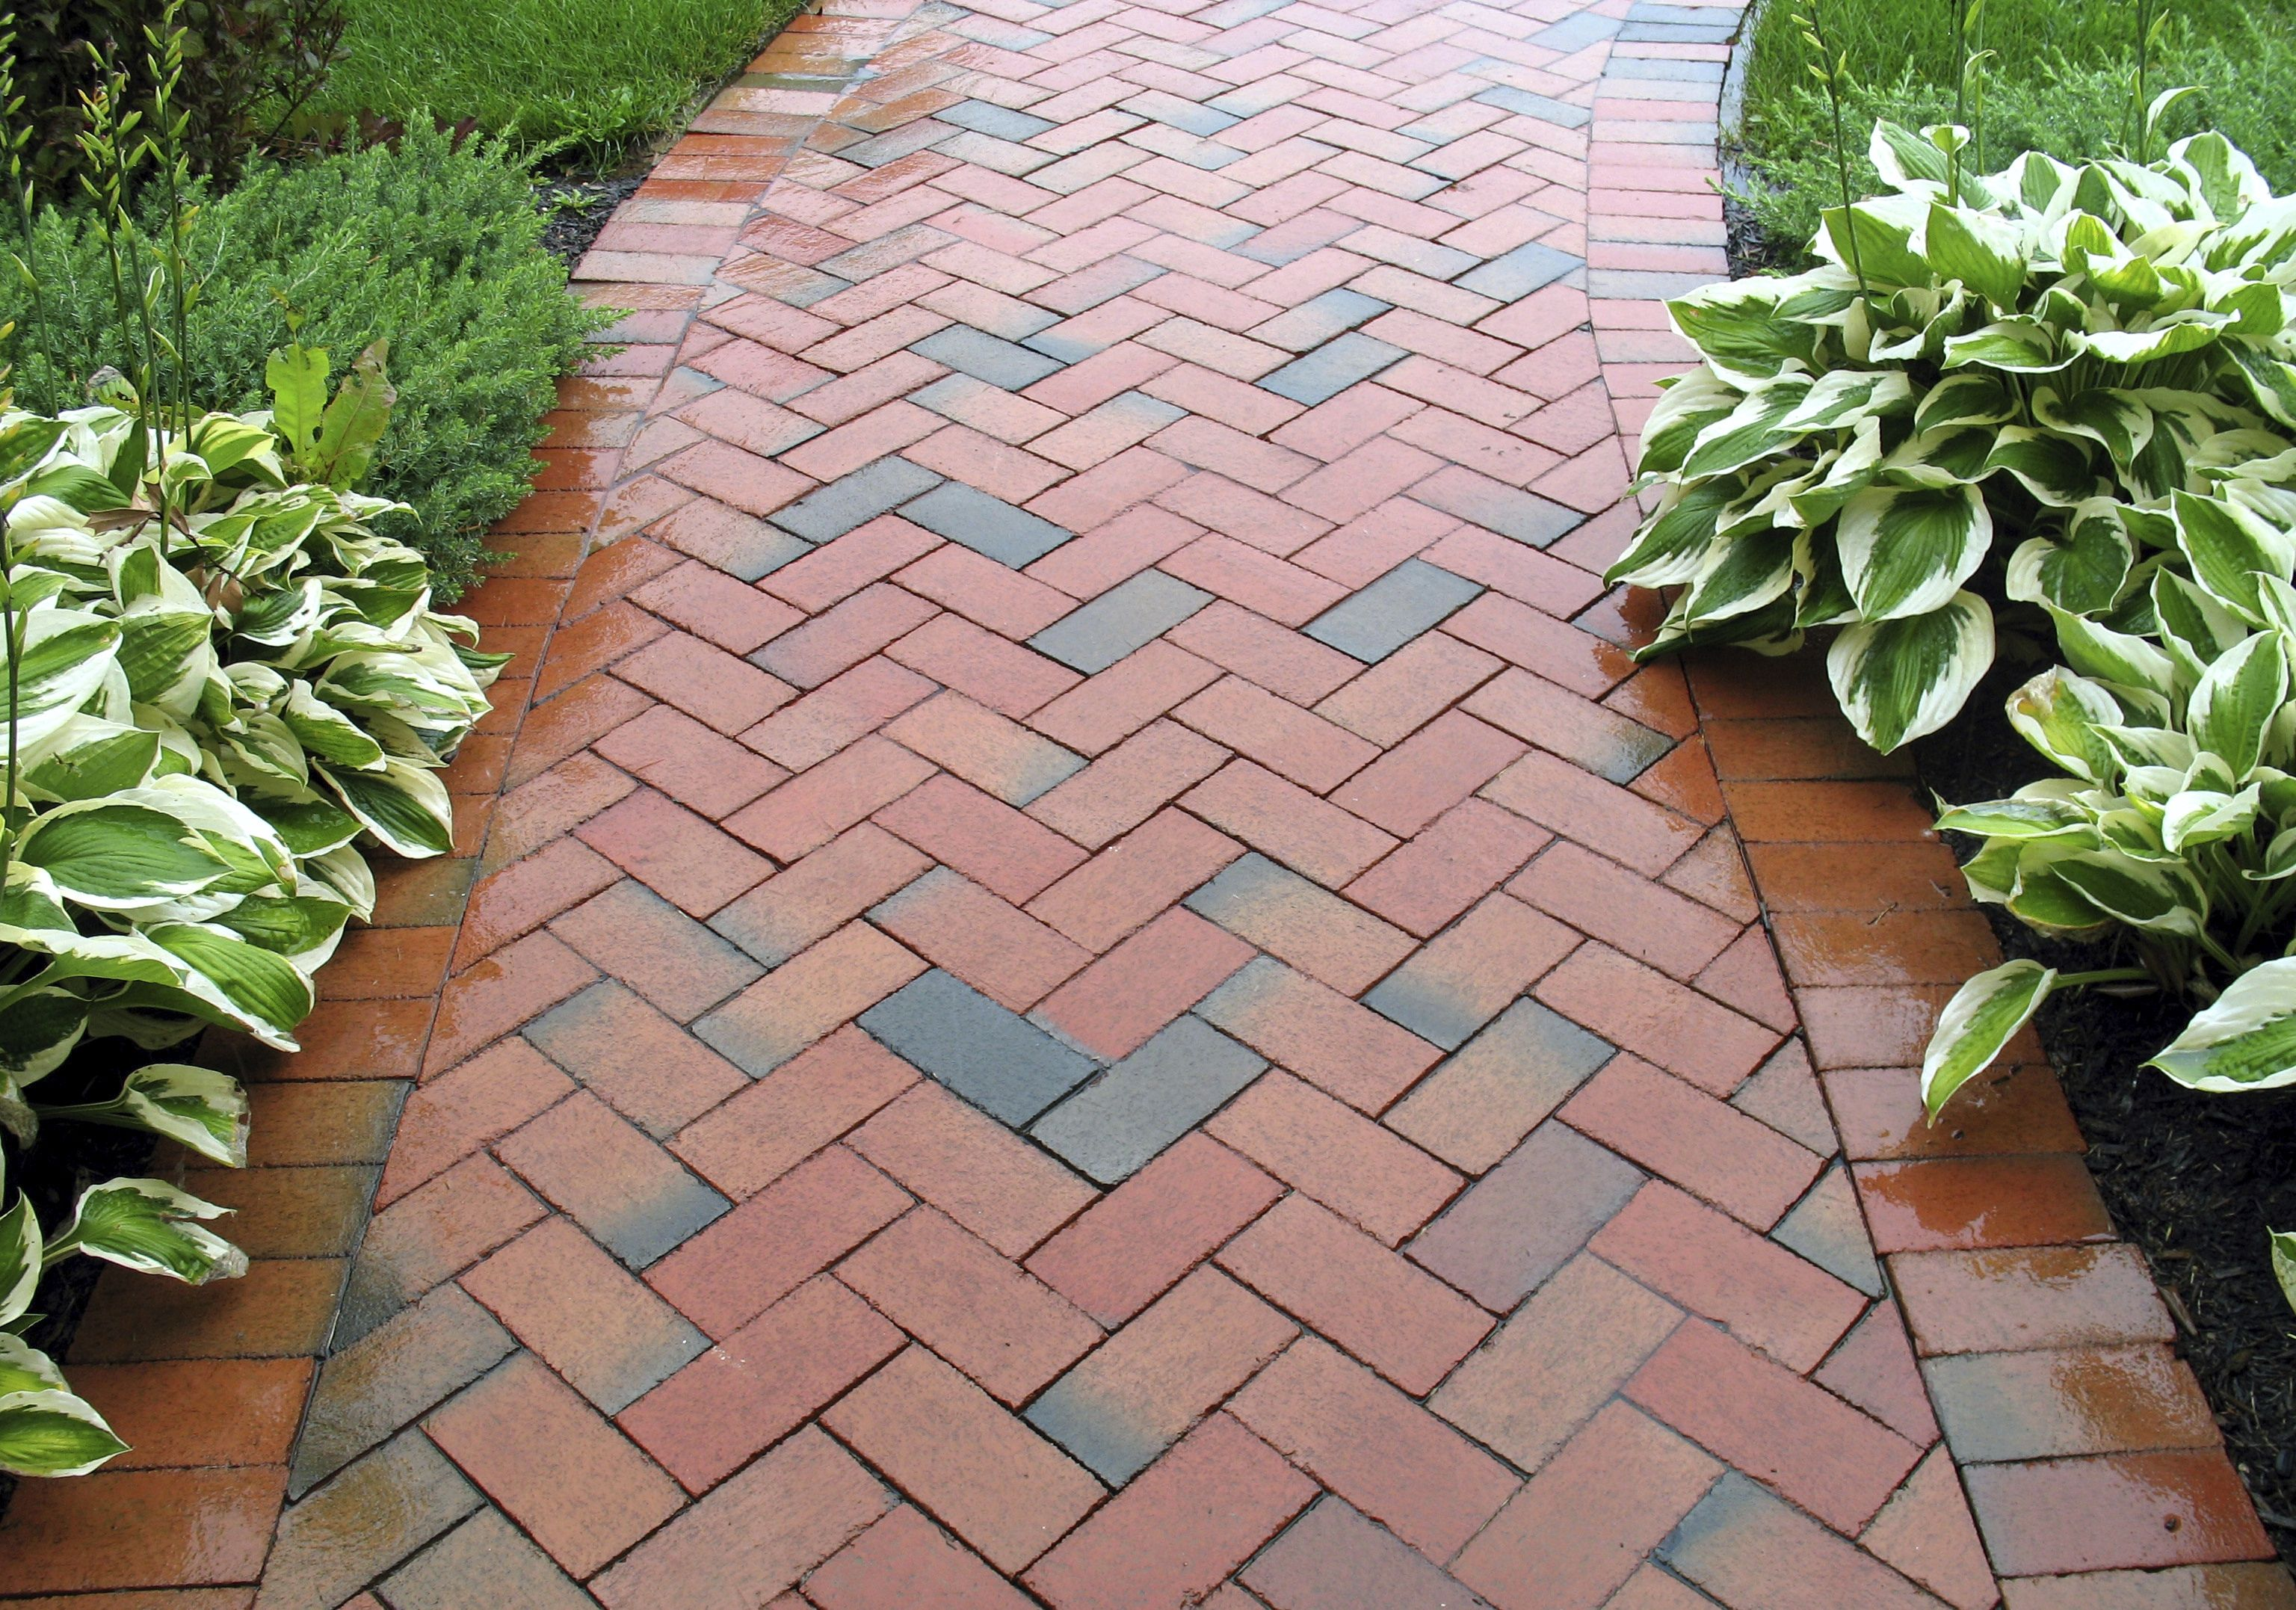 Brick Paver Walkway Designs Brickwalkwayshowcasenorthvirginia 3072×2154  Brick